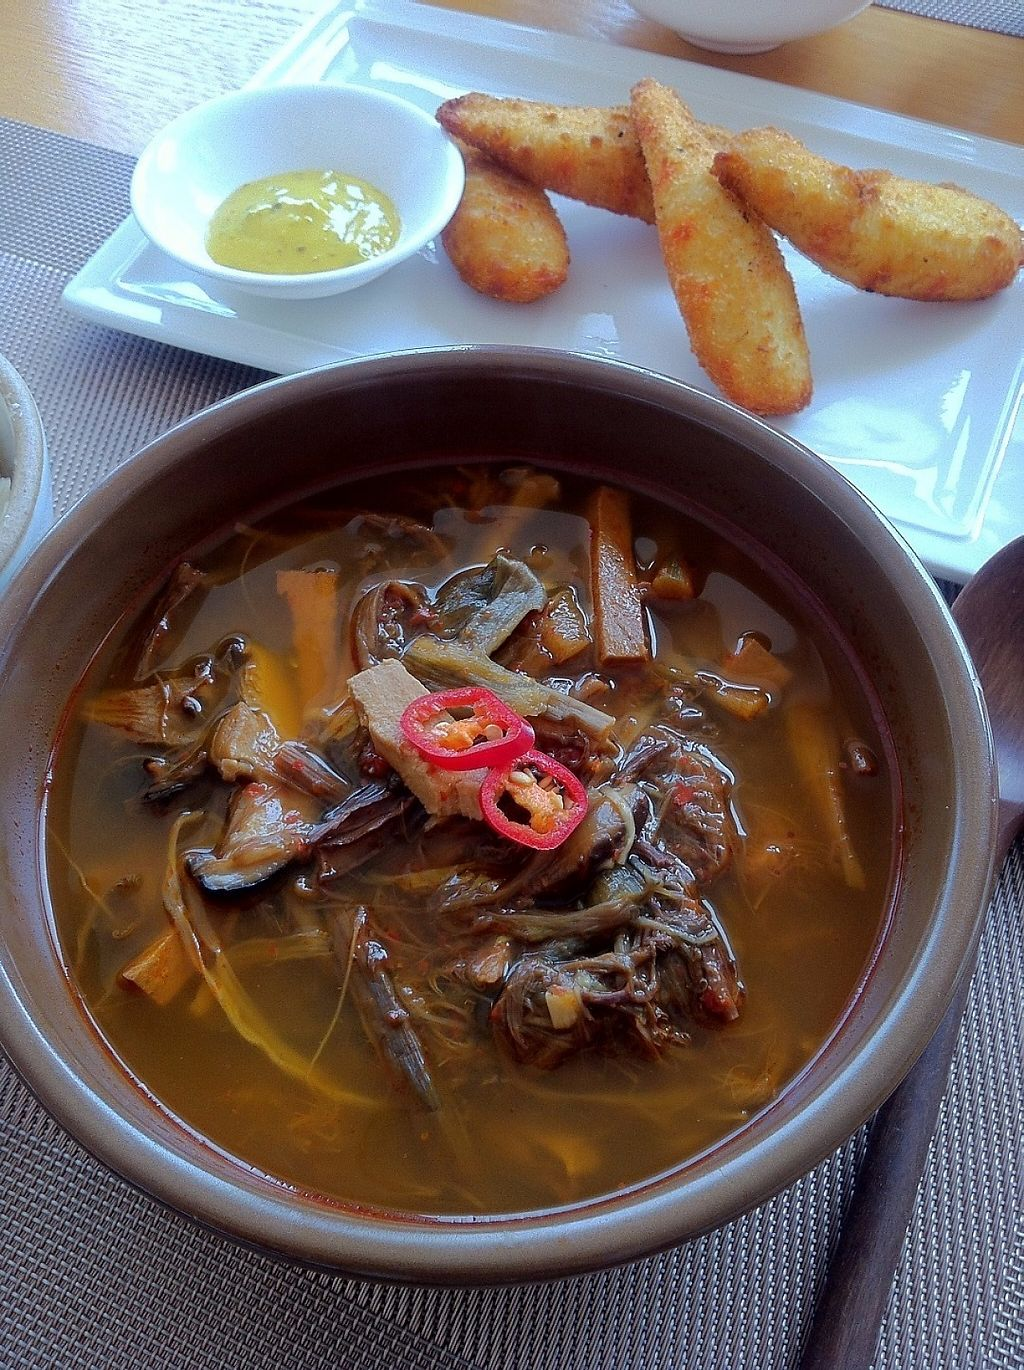 """Photo of Vegenarang  by <a href=""""/members/profile/sujata"""">sujata</a> <br/>Yukgaejang, Korean spicy soup  <br/> June 3, 2017  - <a href='/contact/abuse/image/75142/265231'>Report</a>"""